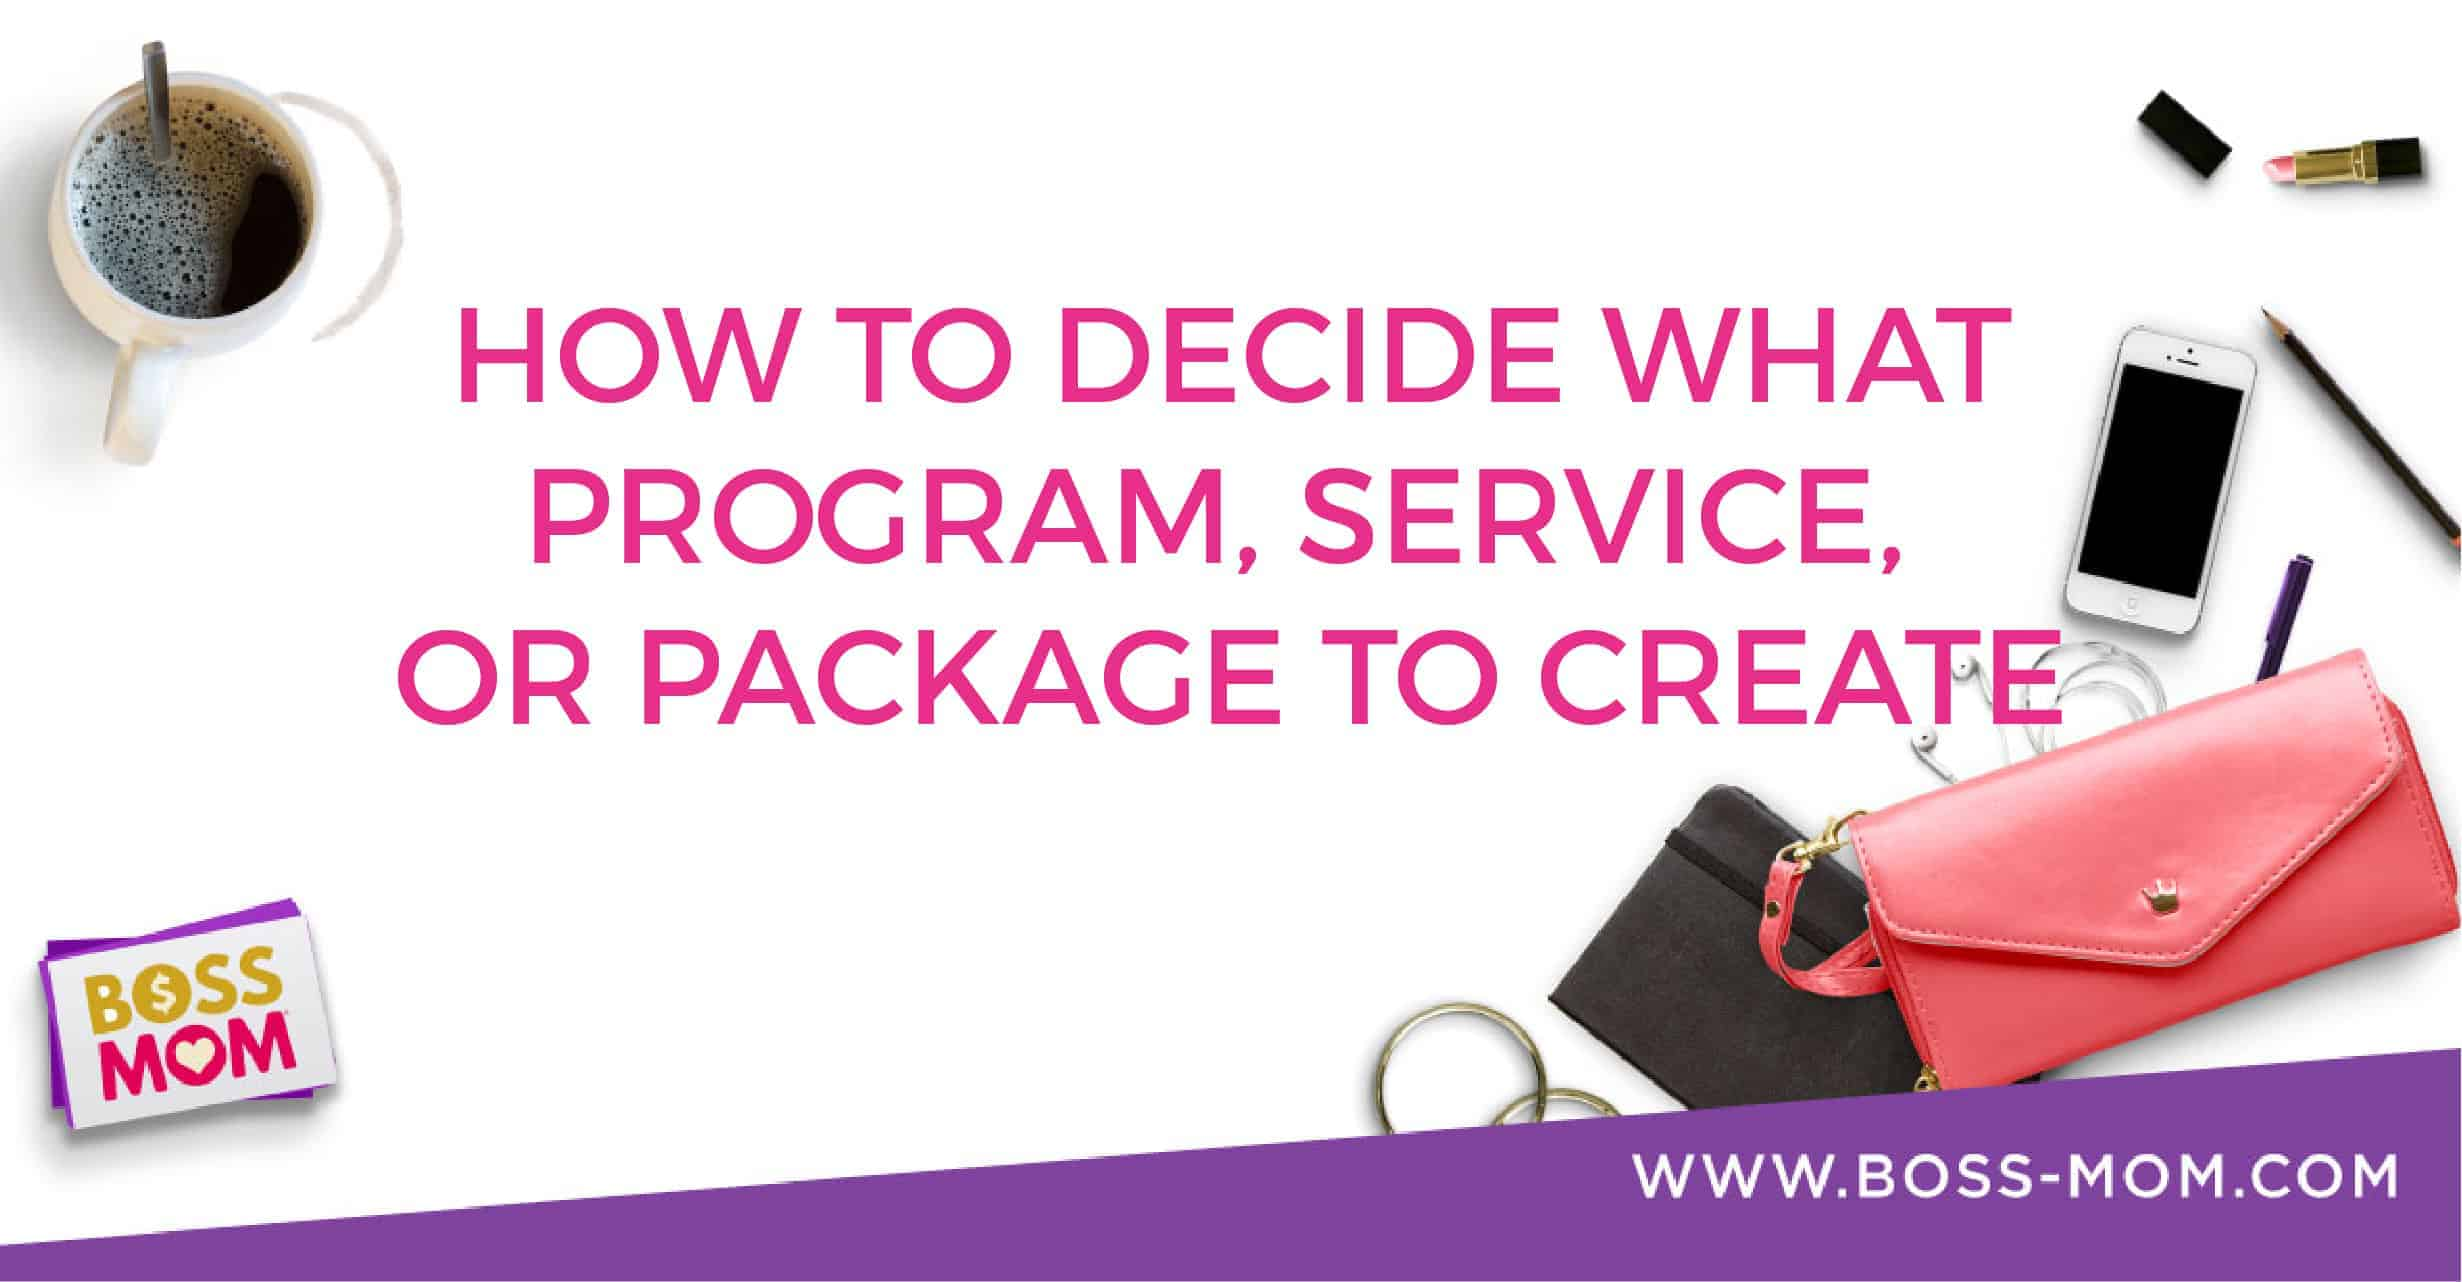 Episode 245: How to Decide What Program, Service or Package to Create